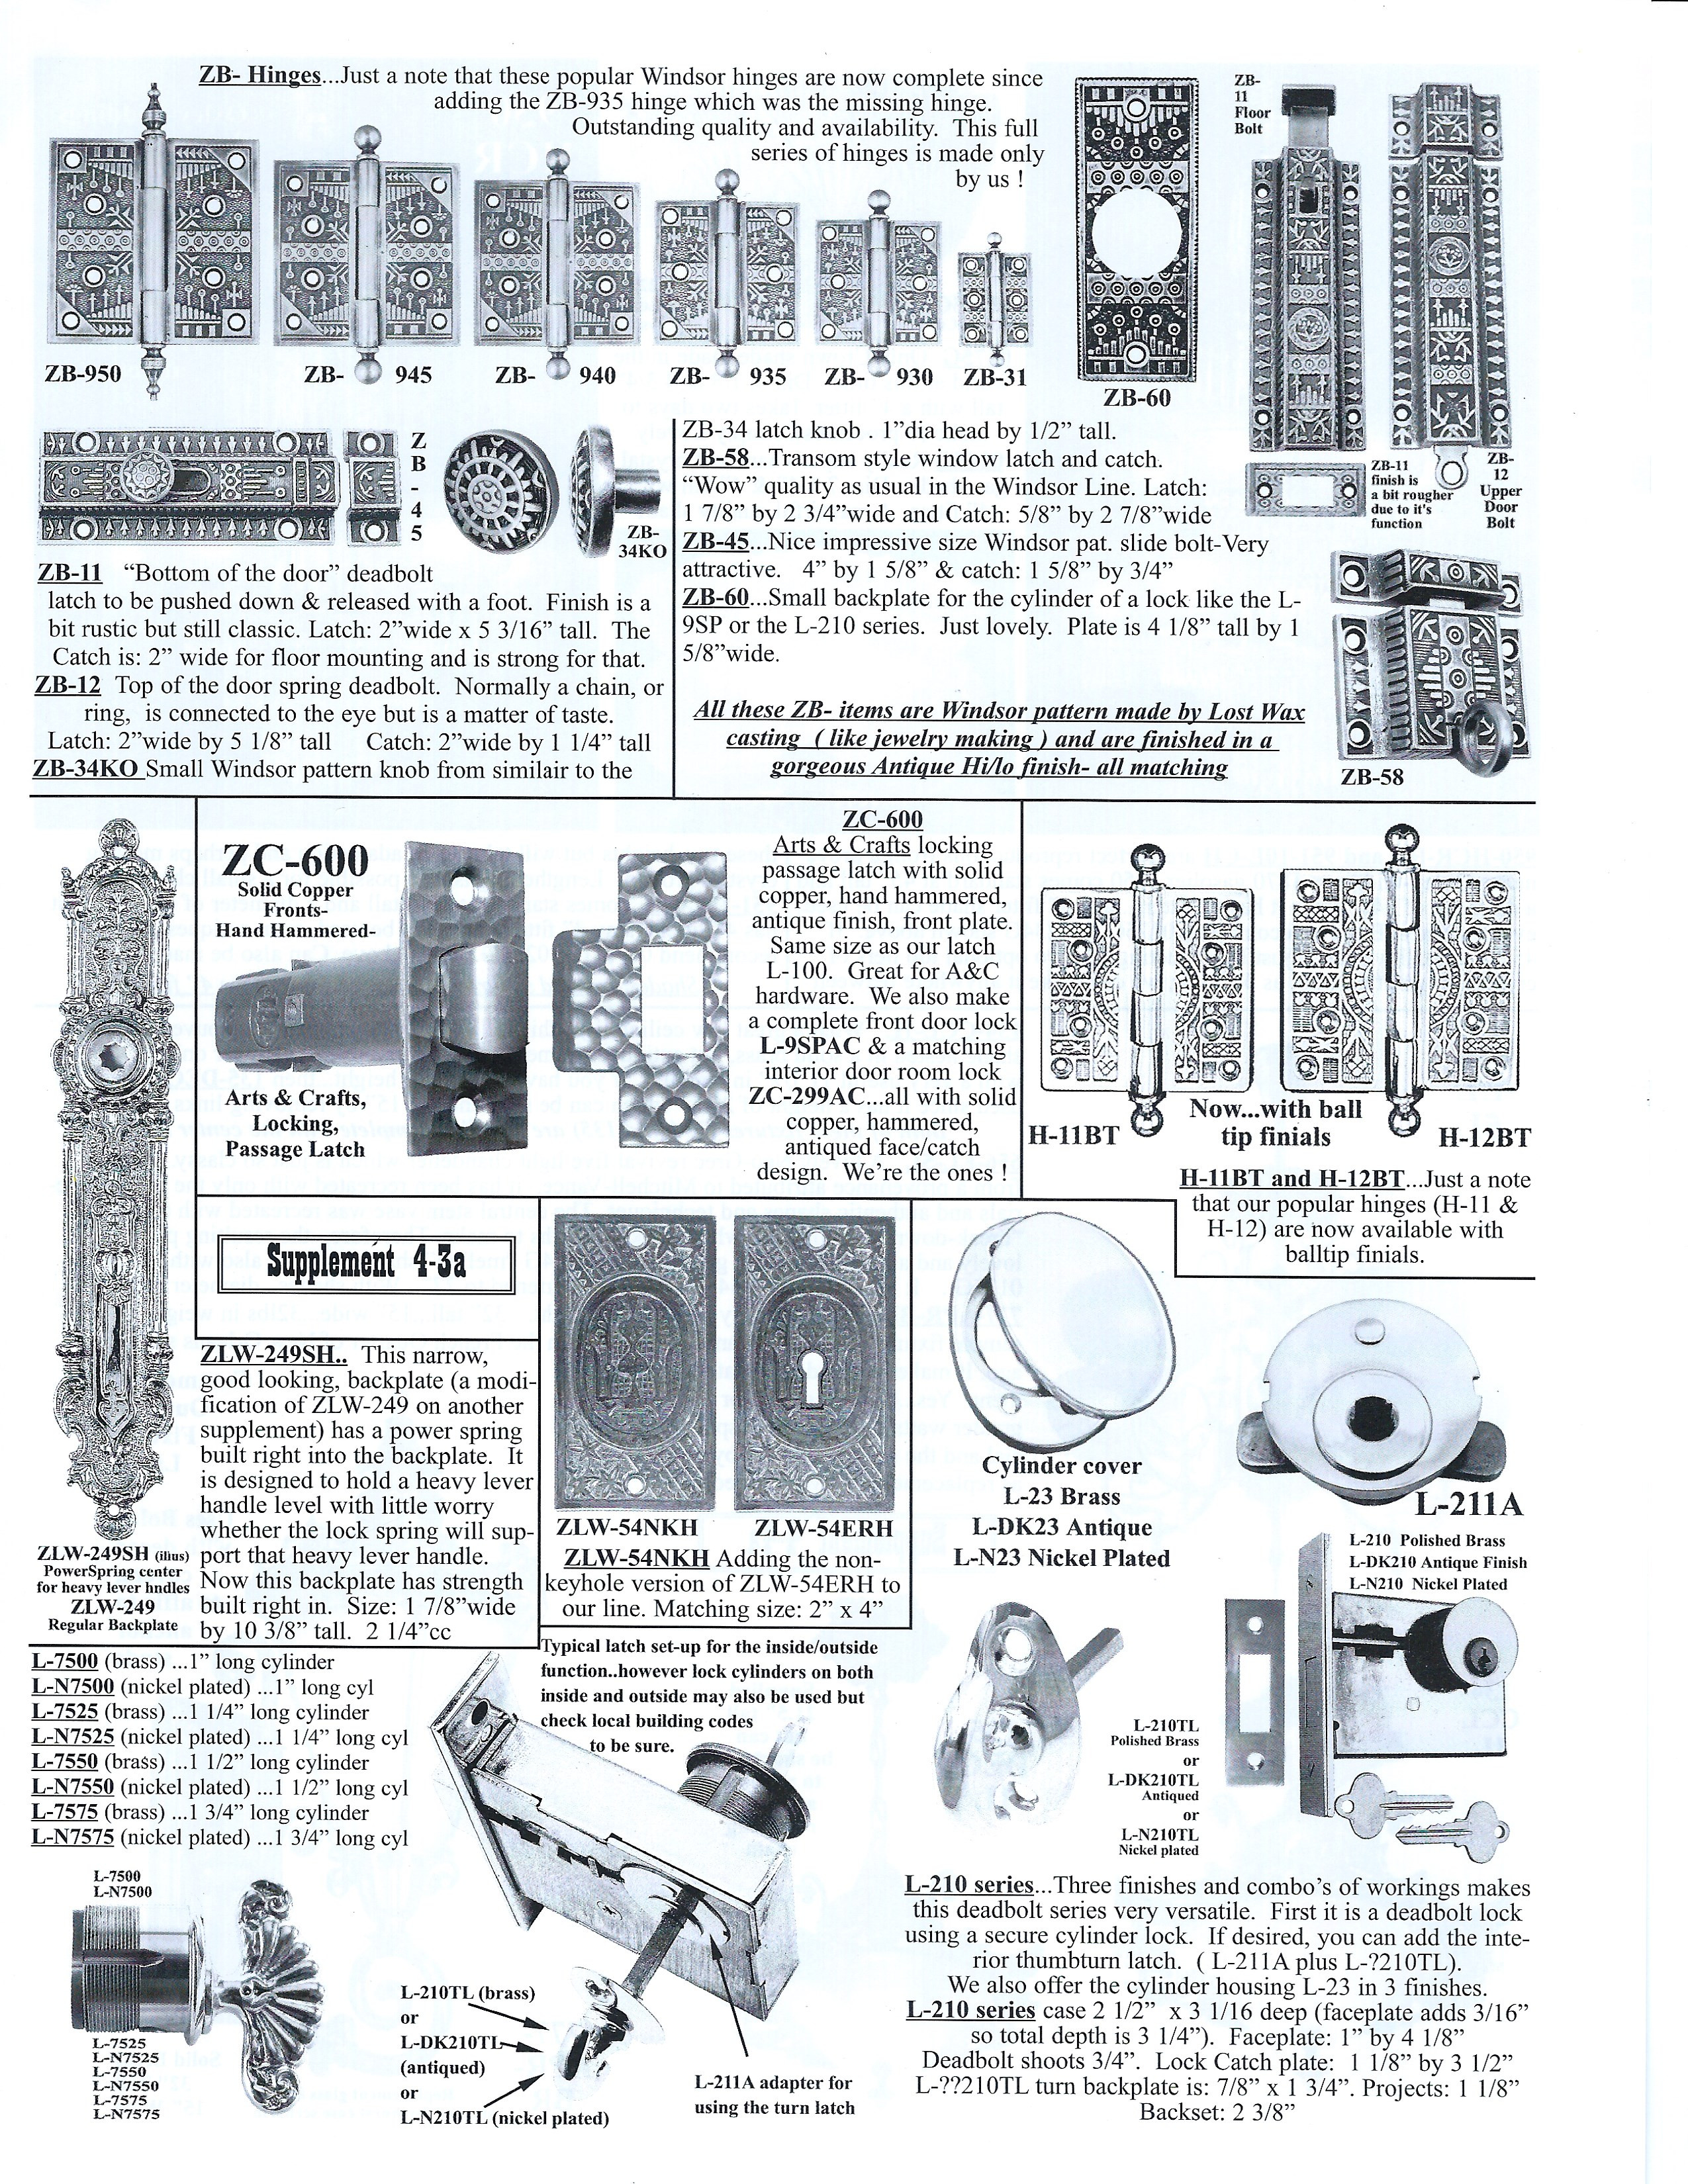 Catalog page 53